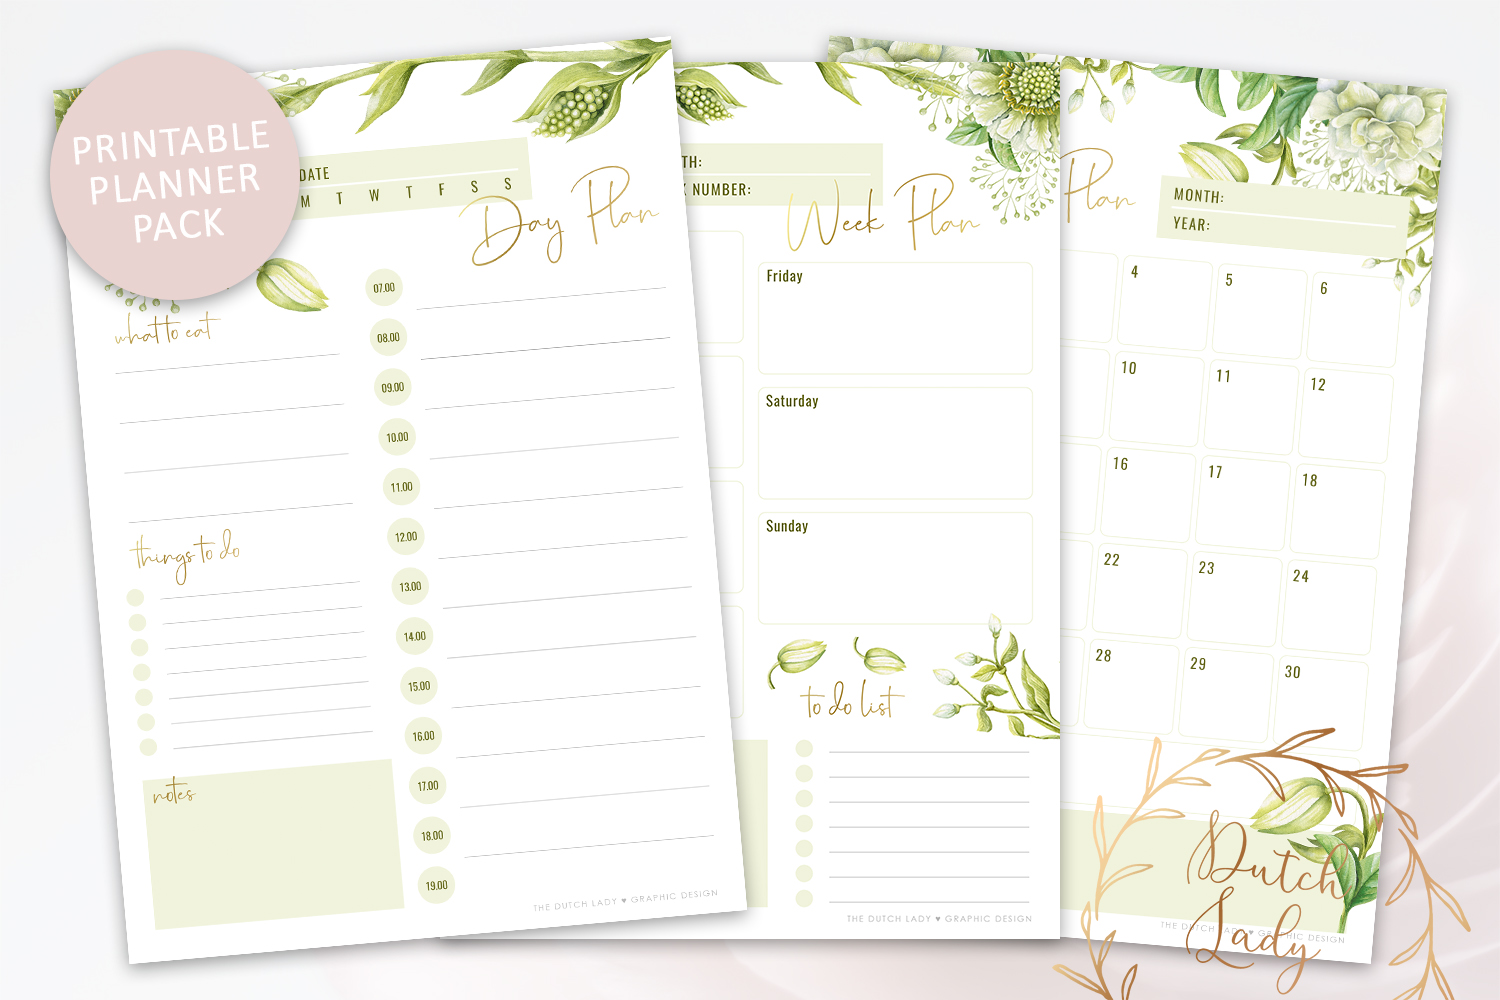 Download Free Printable Planner Pack Graphic By Daphnepopuliers Creative Fabrica for Cricut Explore, Silhouette and other cutting machines.